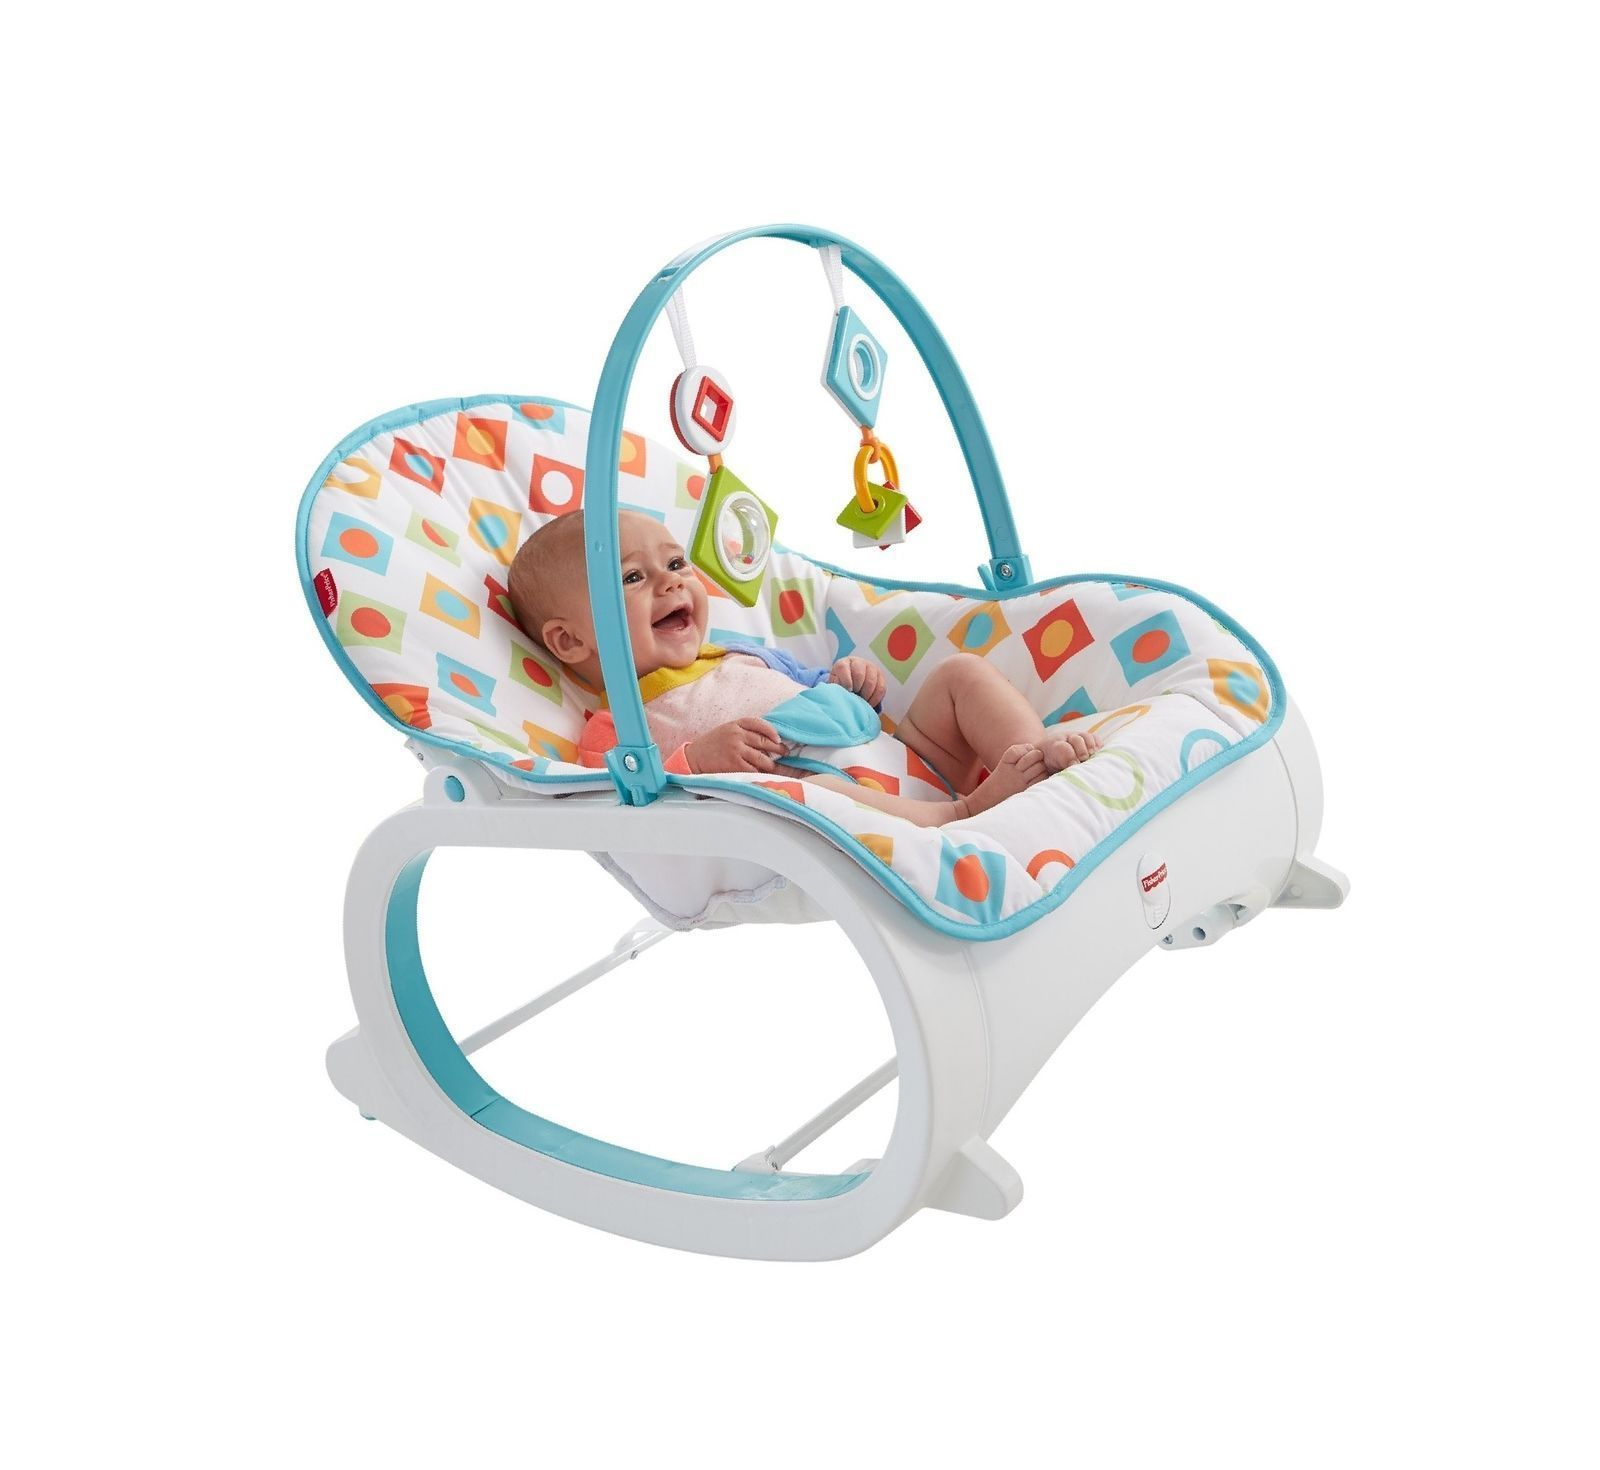 Bouncers and Vibrating Chairs Fisher Price Infant To Toddler